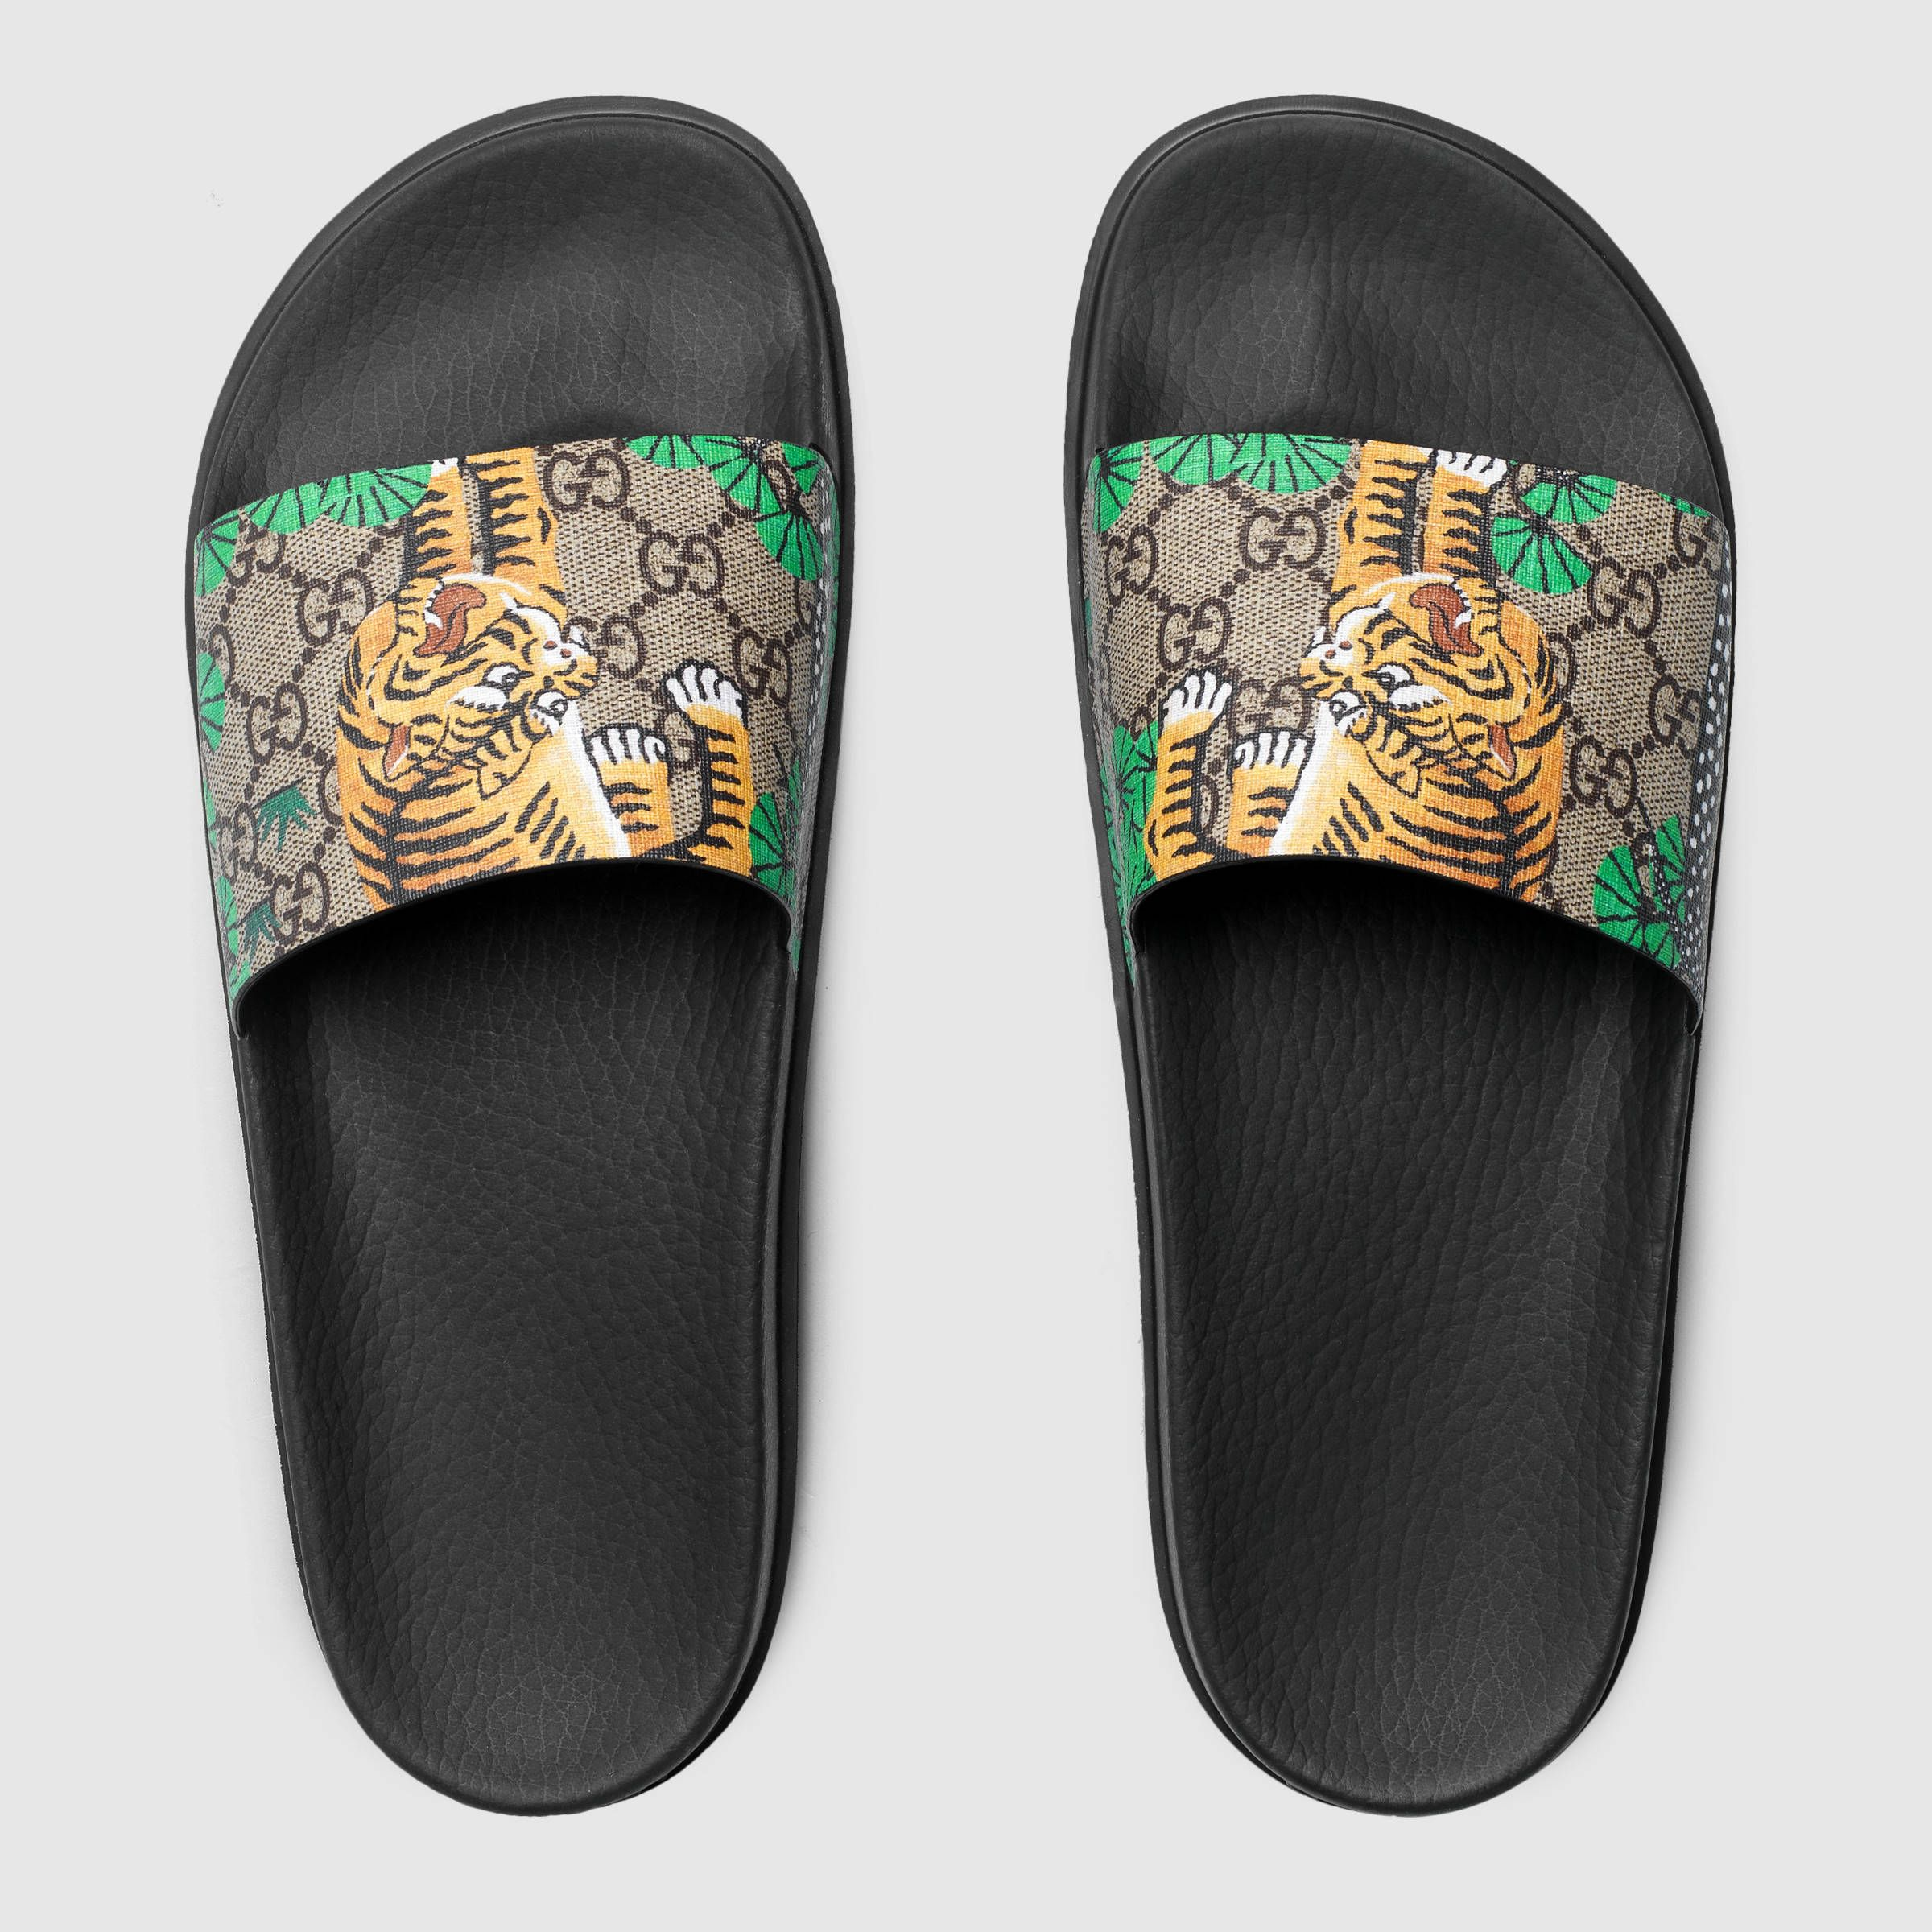 9f1523376 Gucci Gucci Bengal slide sandal Detail 3 | My Style in 2019 | Shoes ...